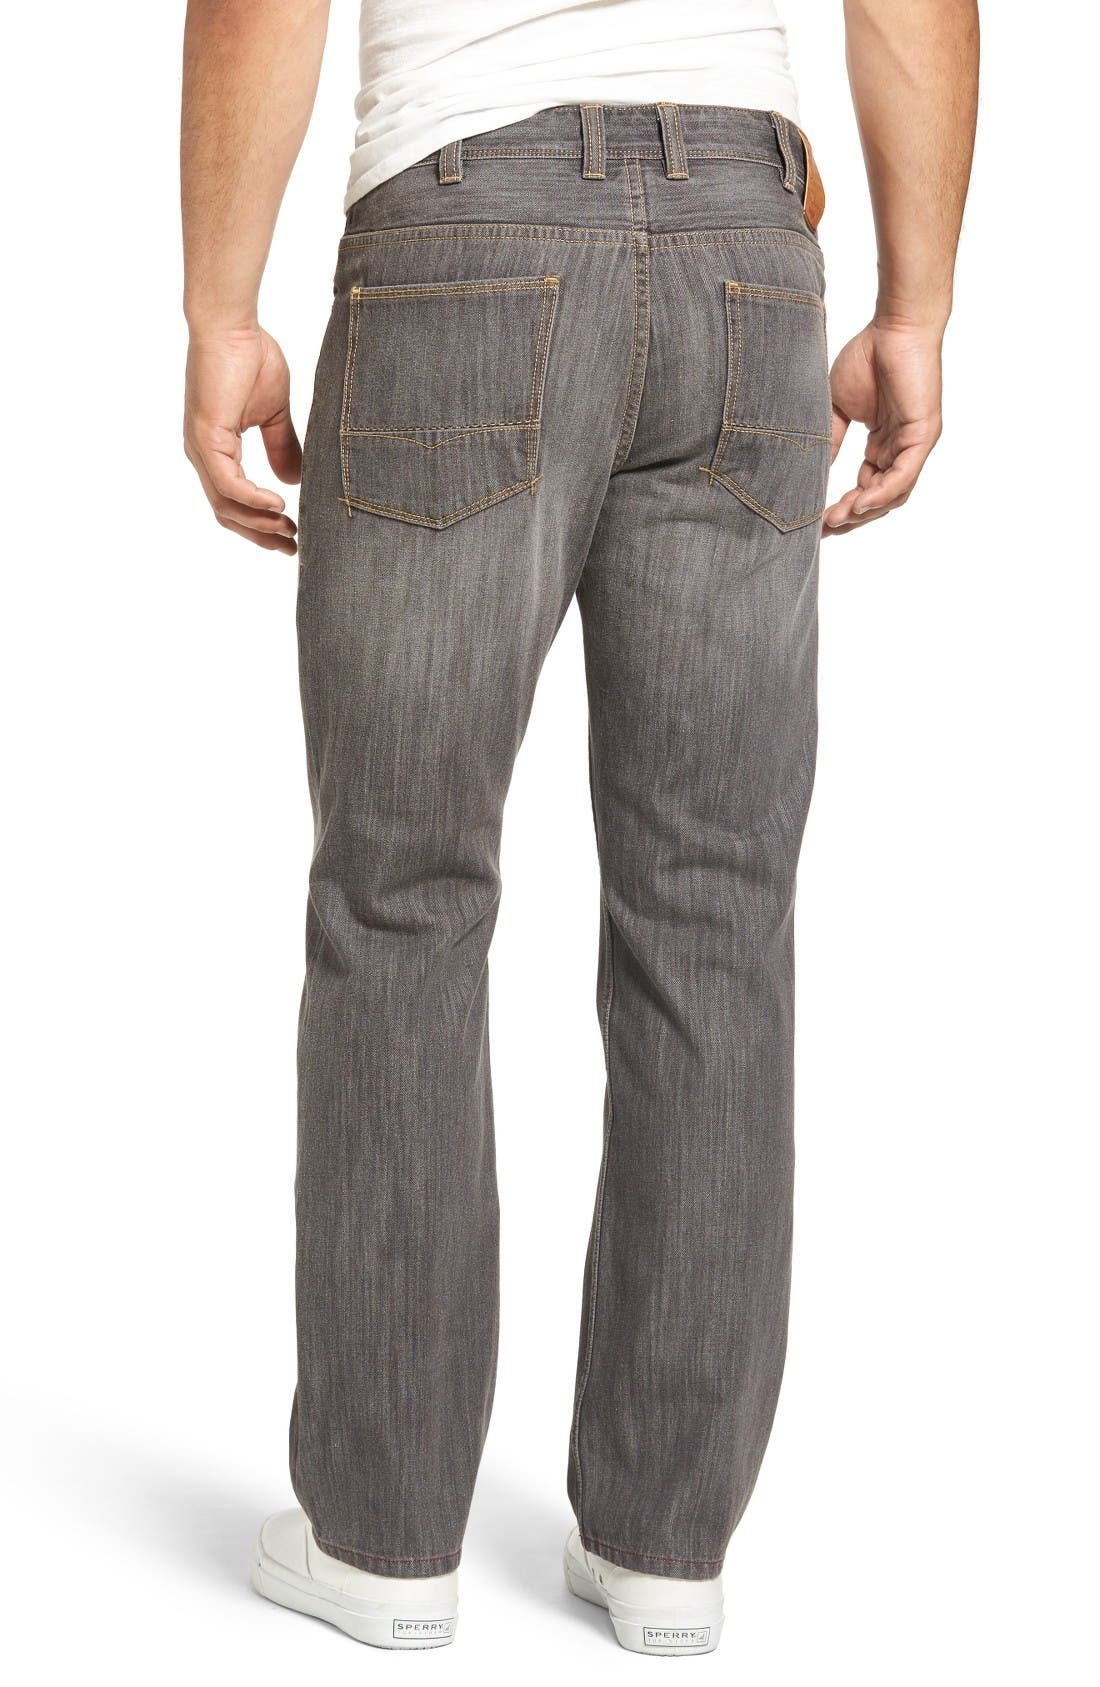 Barbados Straight Leg Jeans,                             Alternate thumbnail 2, color,                             Vintage Grey Wash